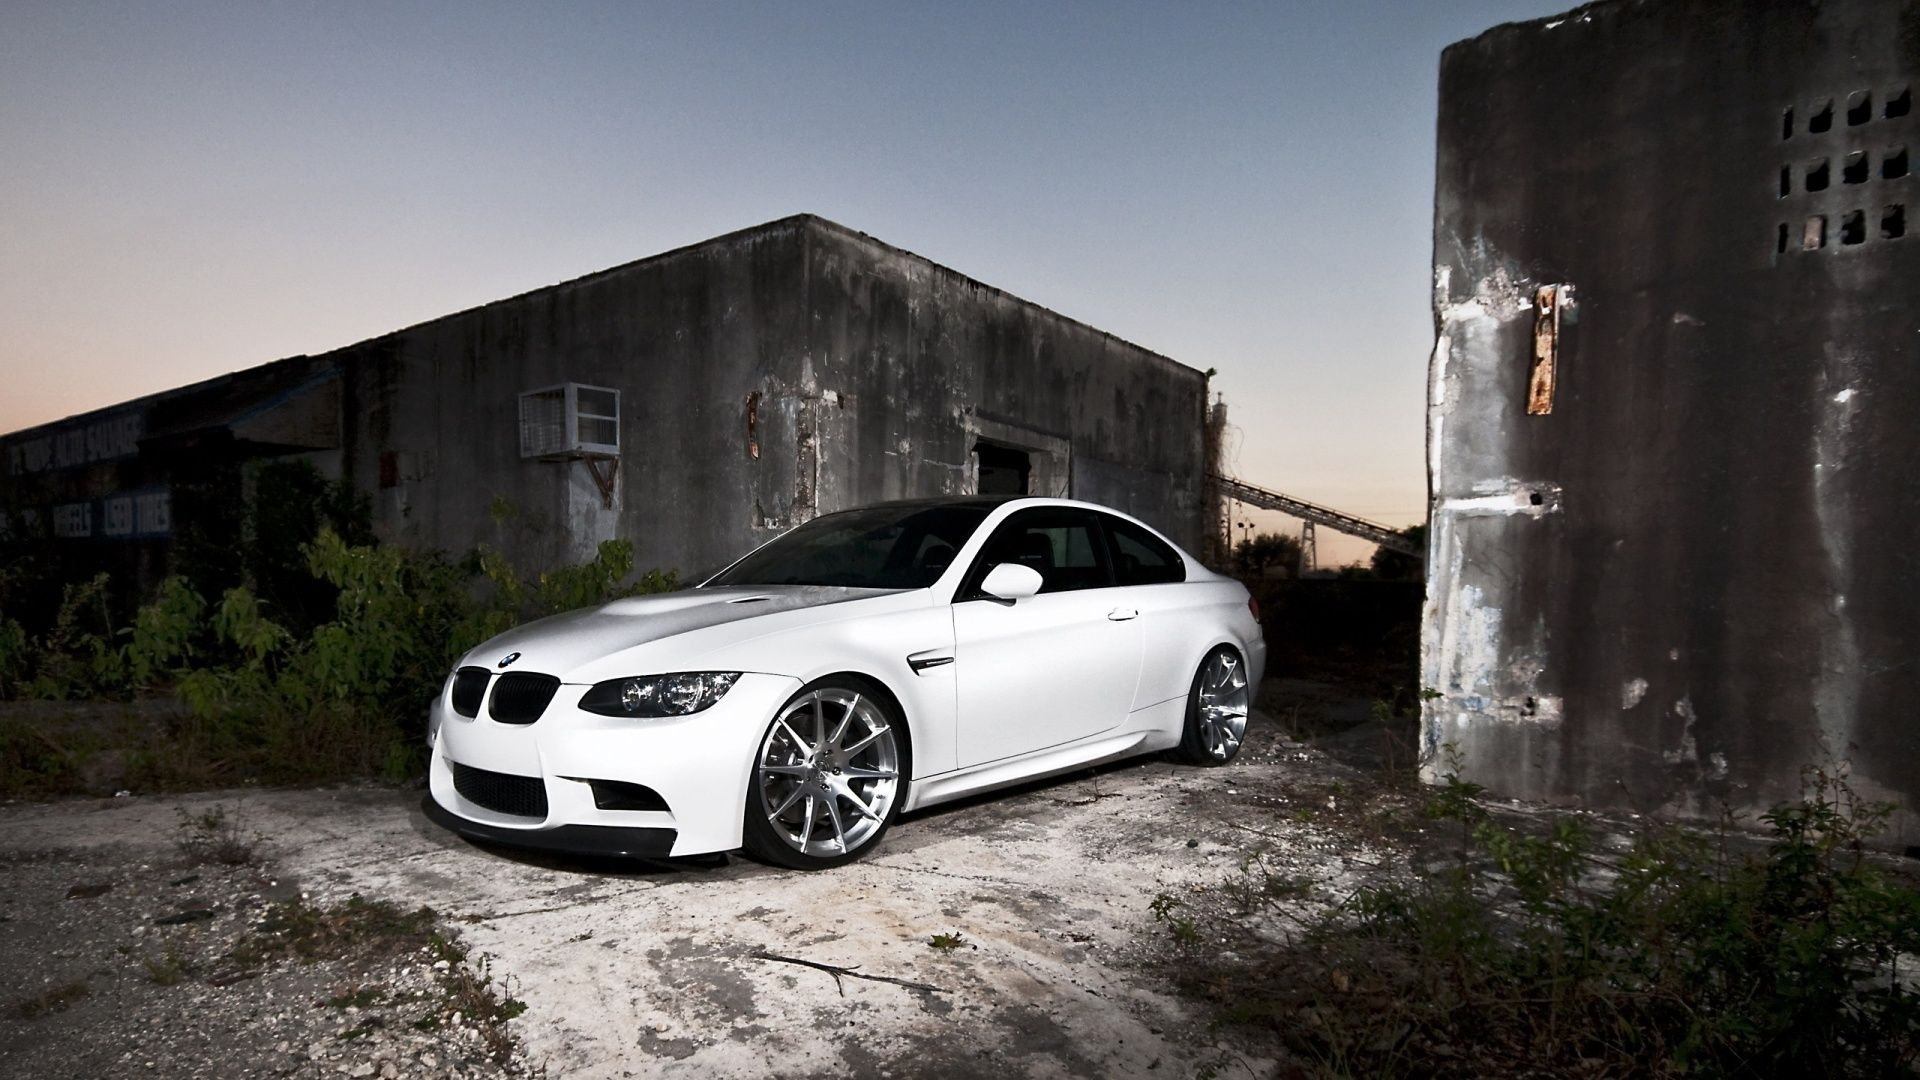 bmw m3 e92 highway hd wallpaper | Cars HD Wallpapers | Pinterest ...